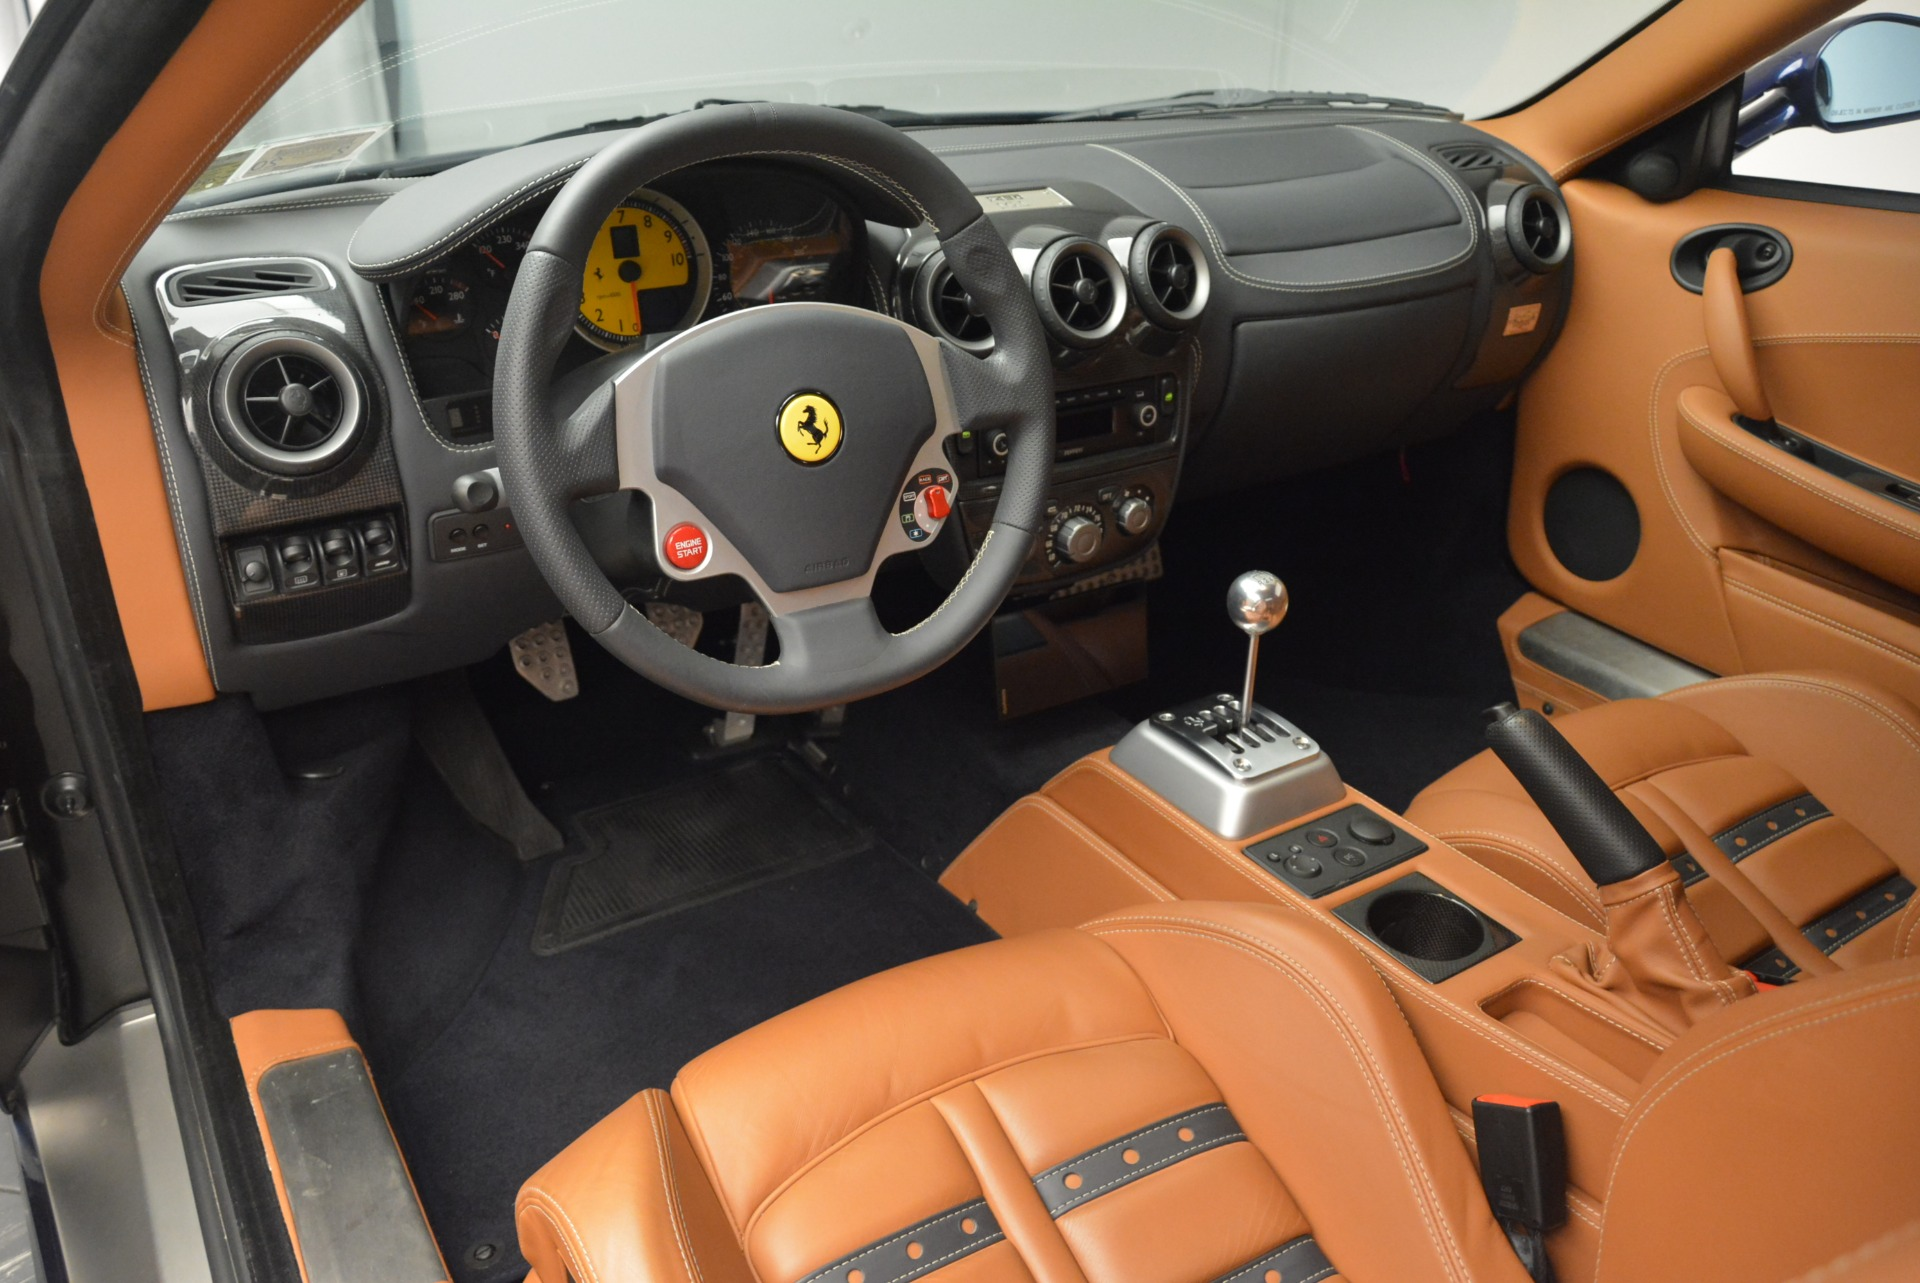 Used 2009 Ferrari F430 6-Speed Manual For Sale In Westport, CT 2466_p14